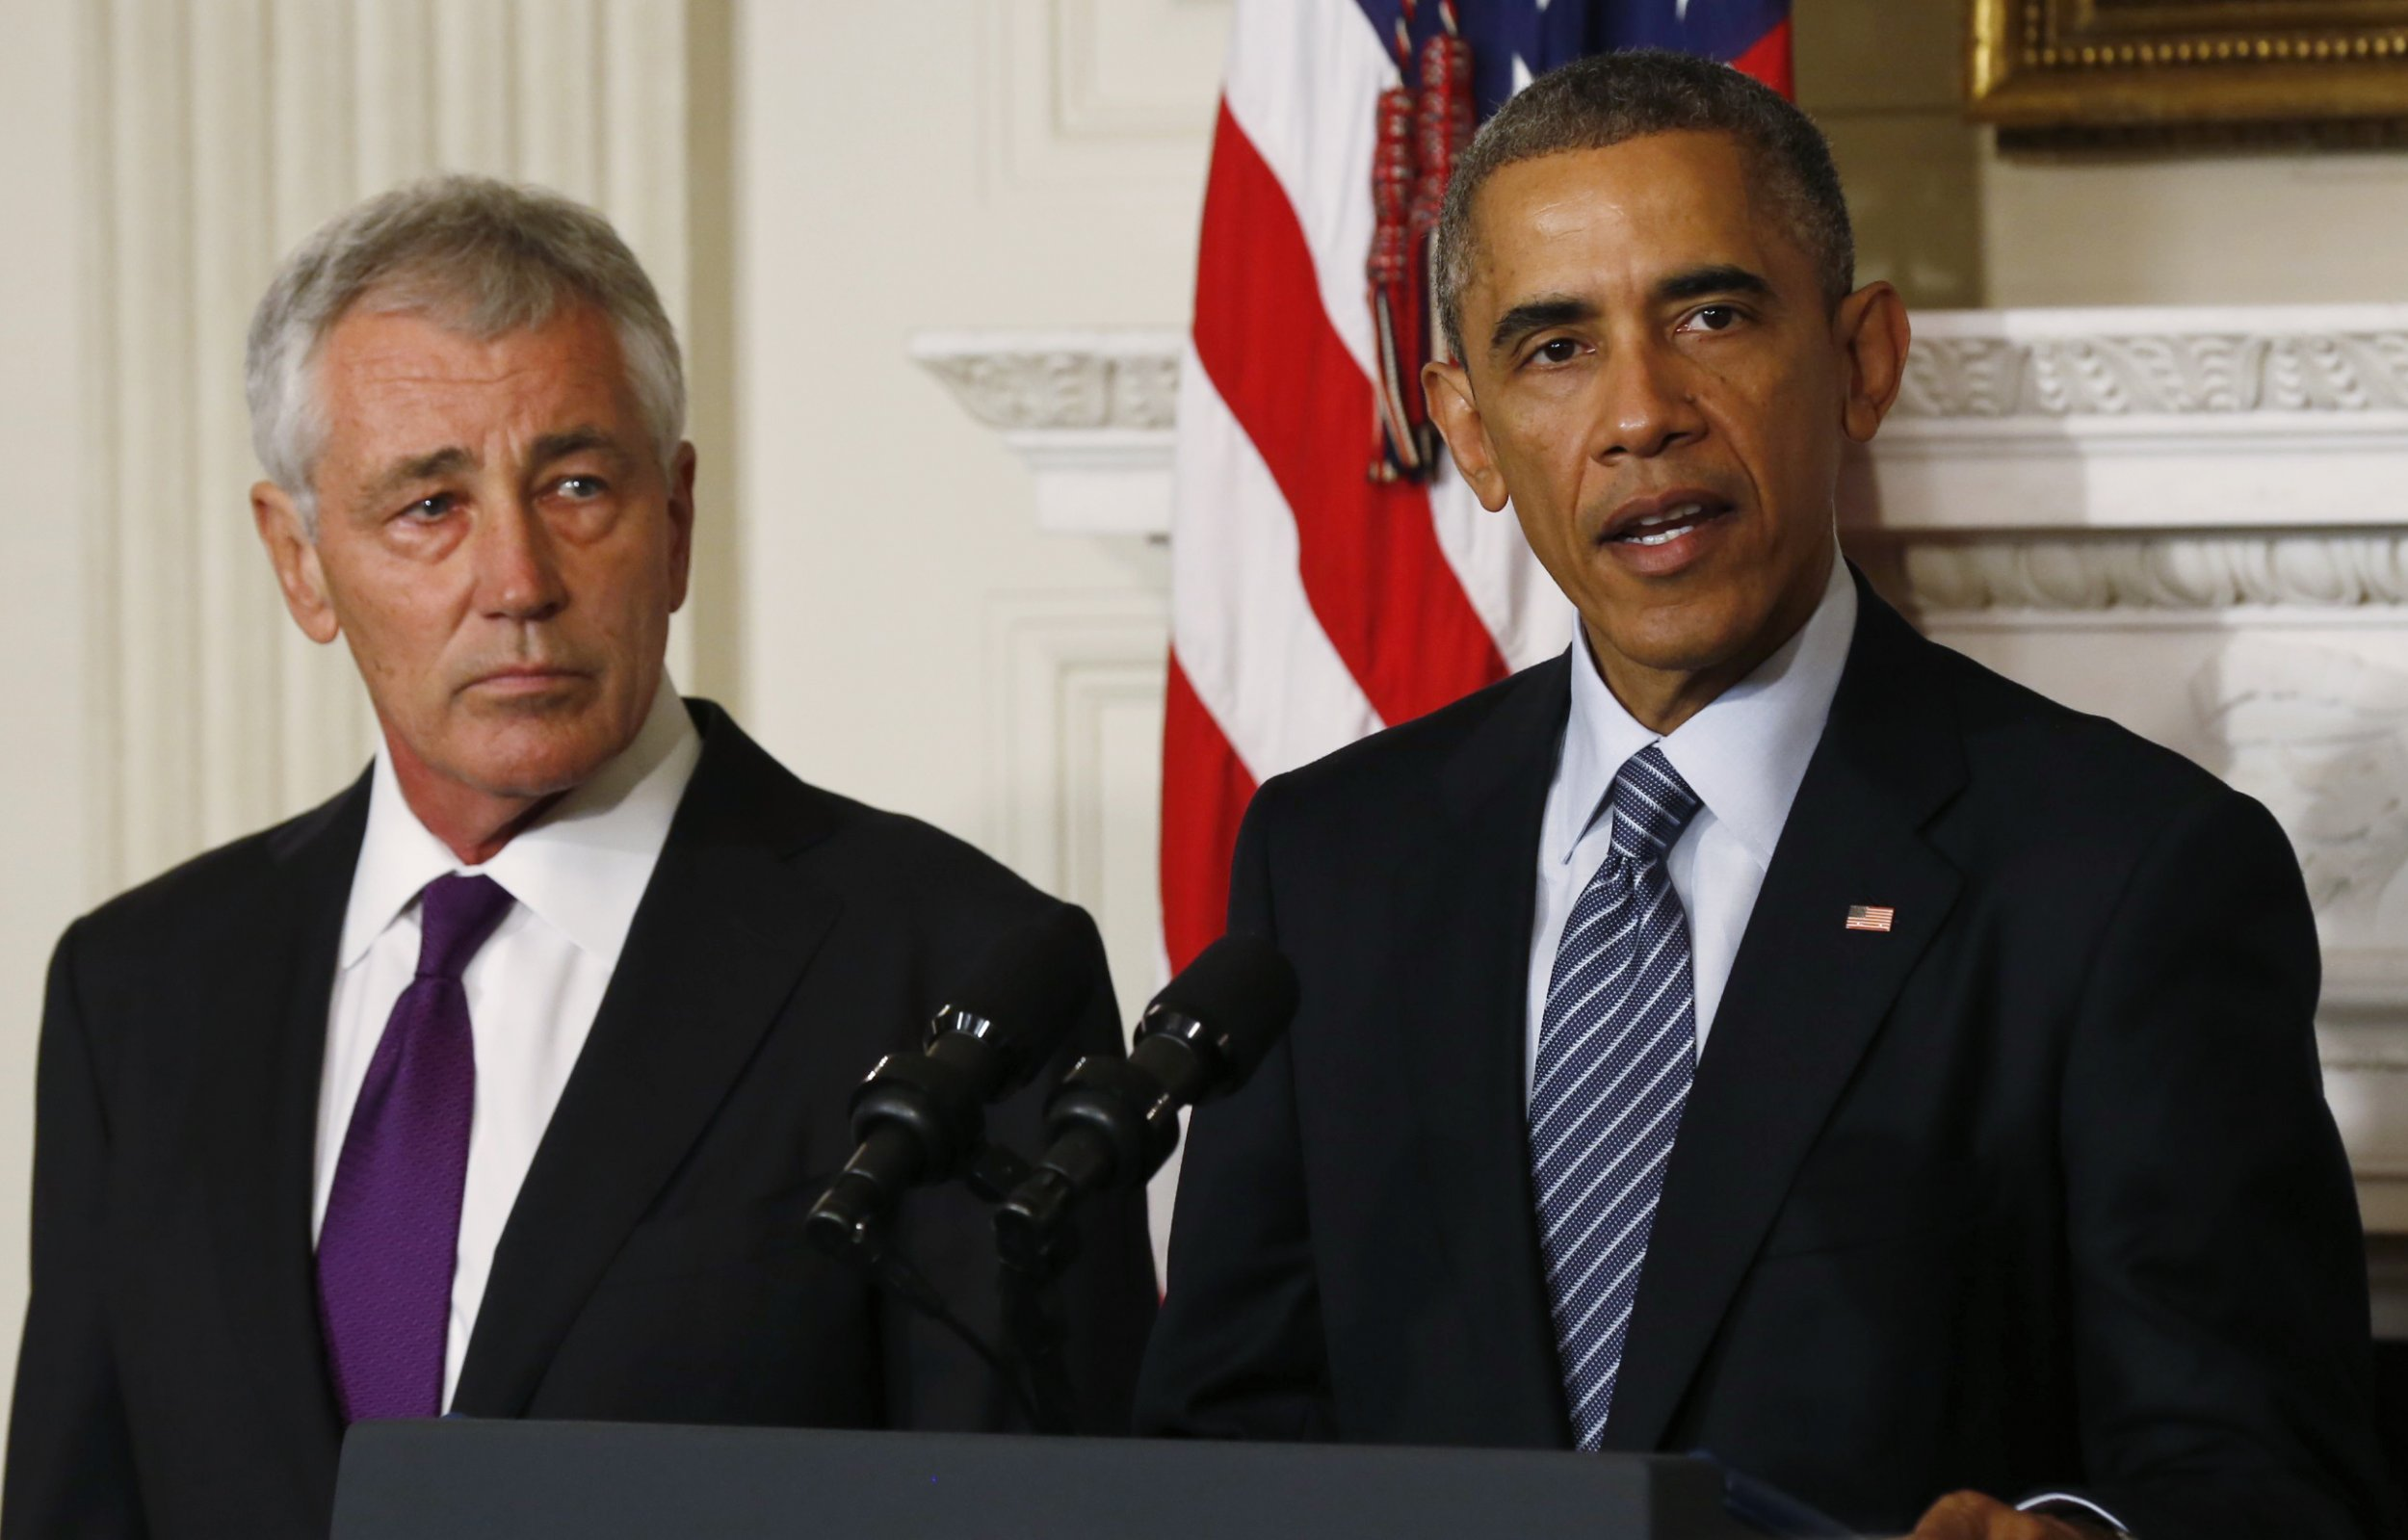 President Obama Announces Resignation of Chuck Hagel